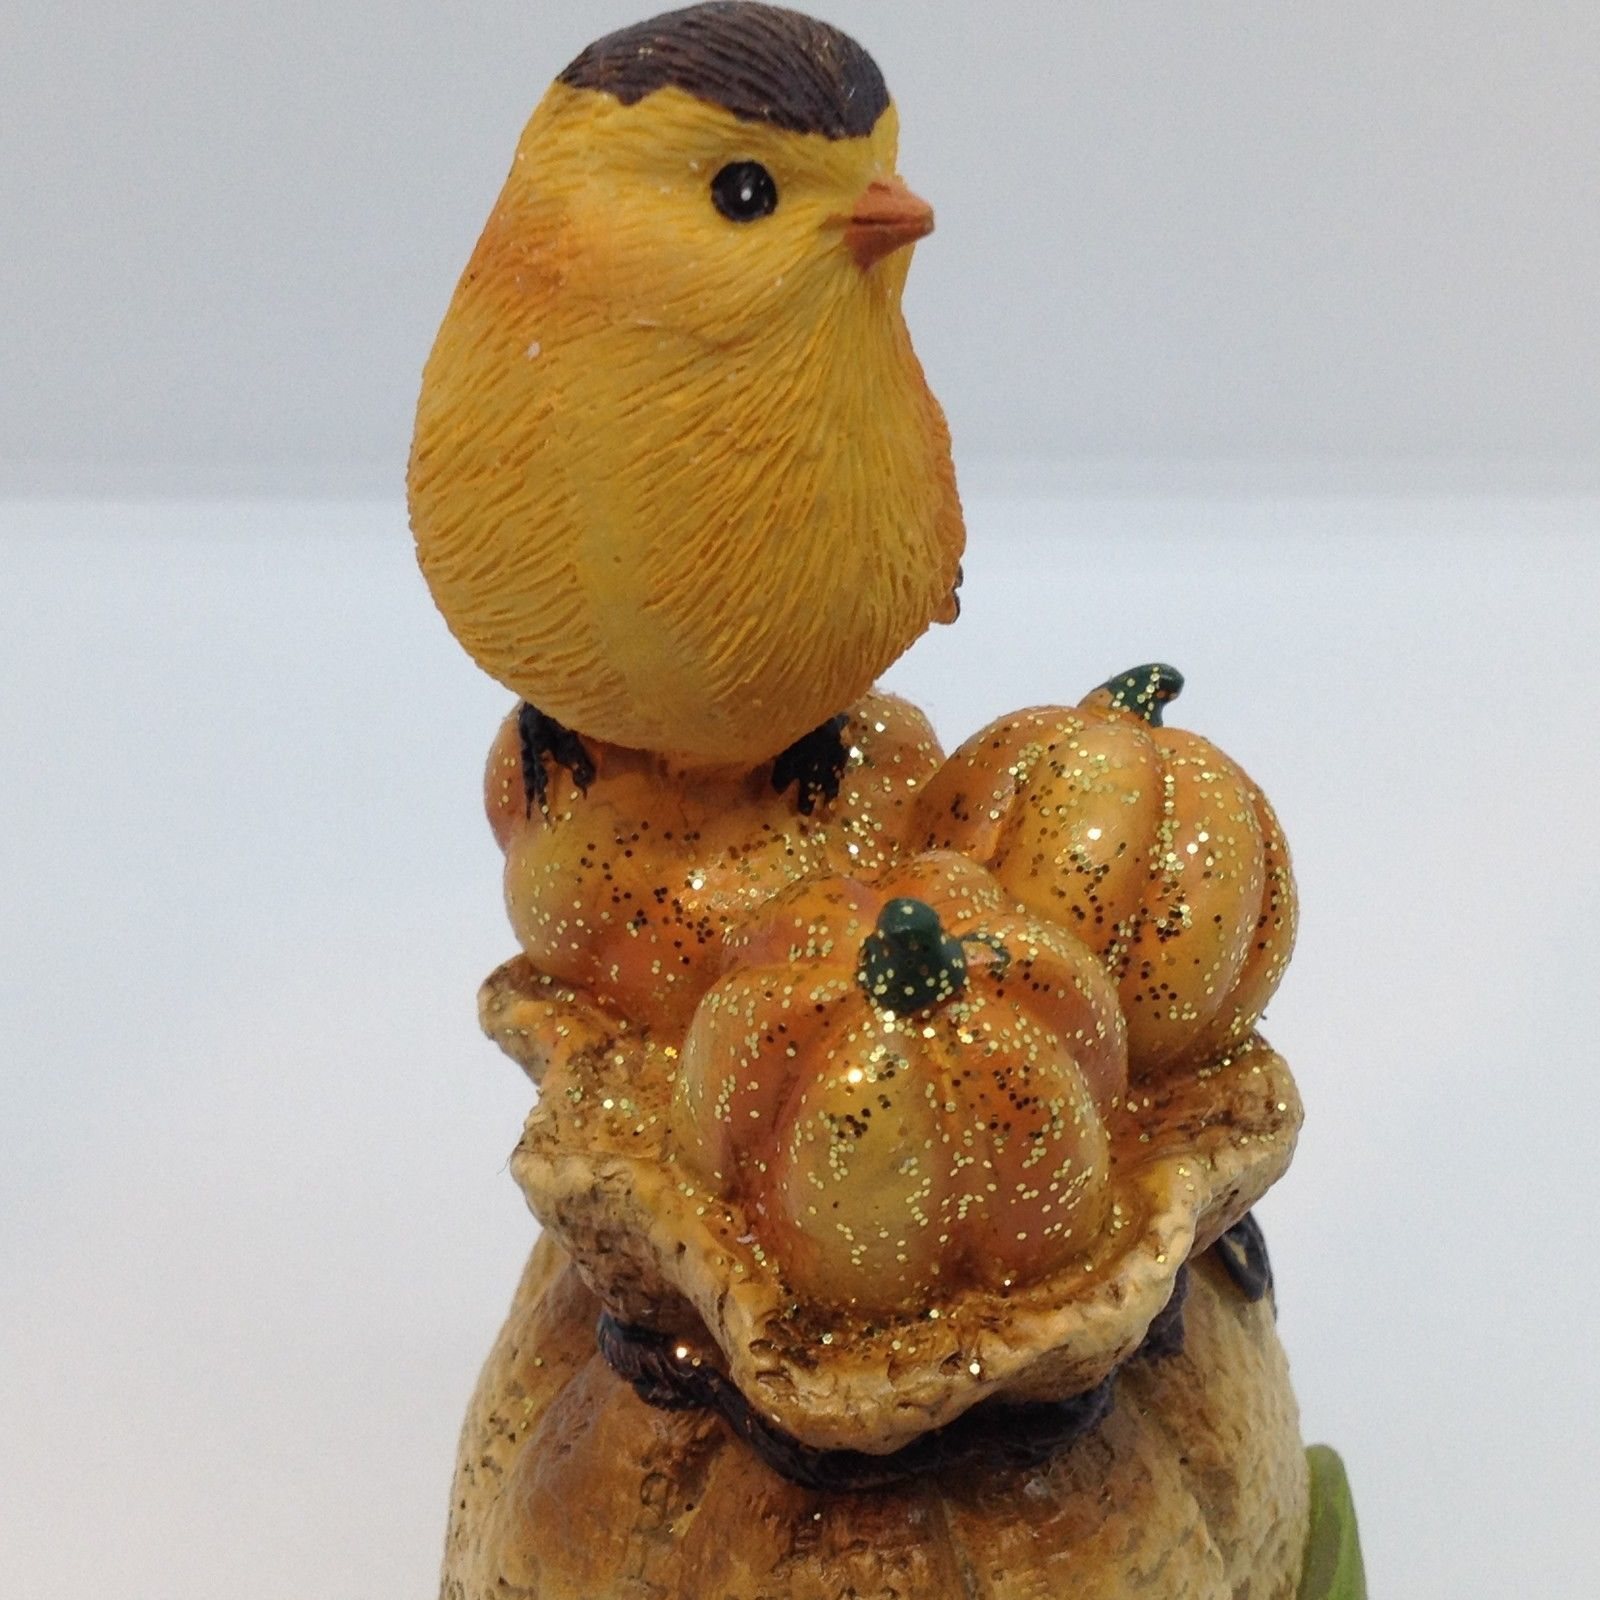 HARVEST BLESSINGS BIRD FIGURINE Light Up Fall Thanksgiving Home Decor Gift 6""